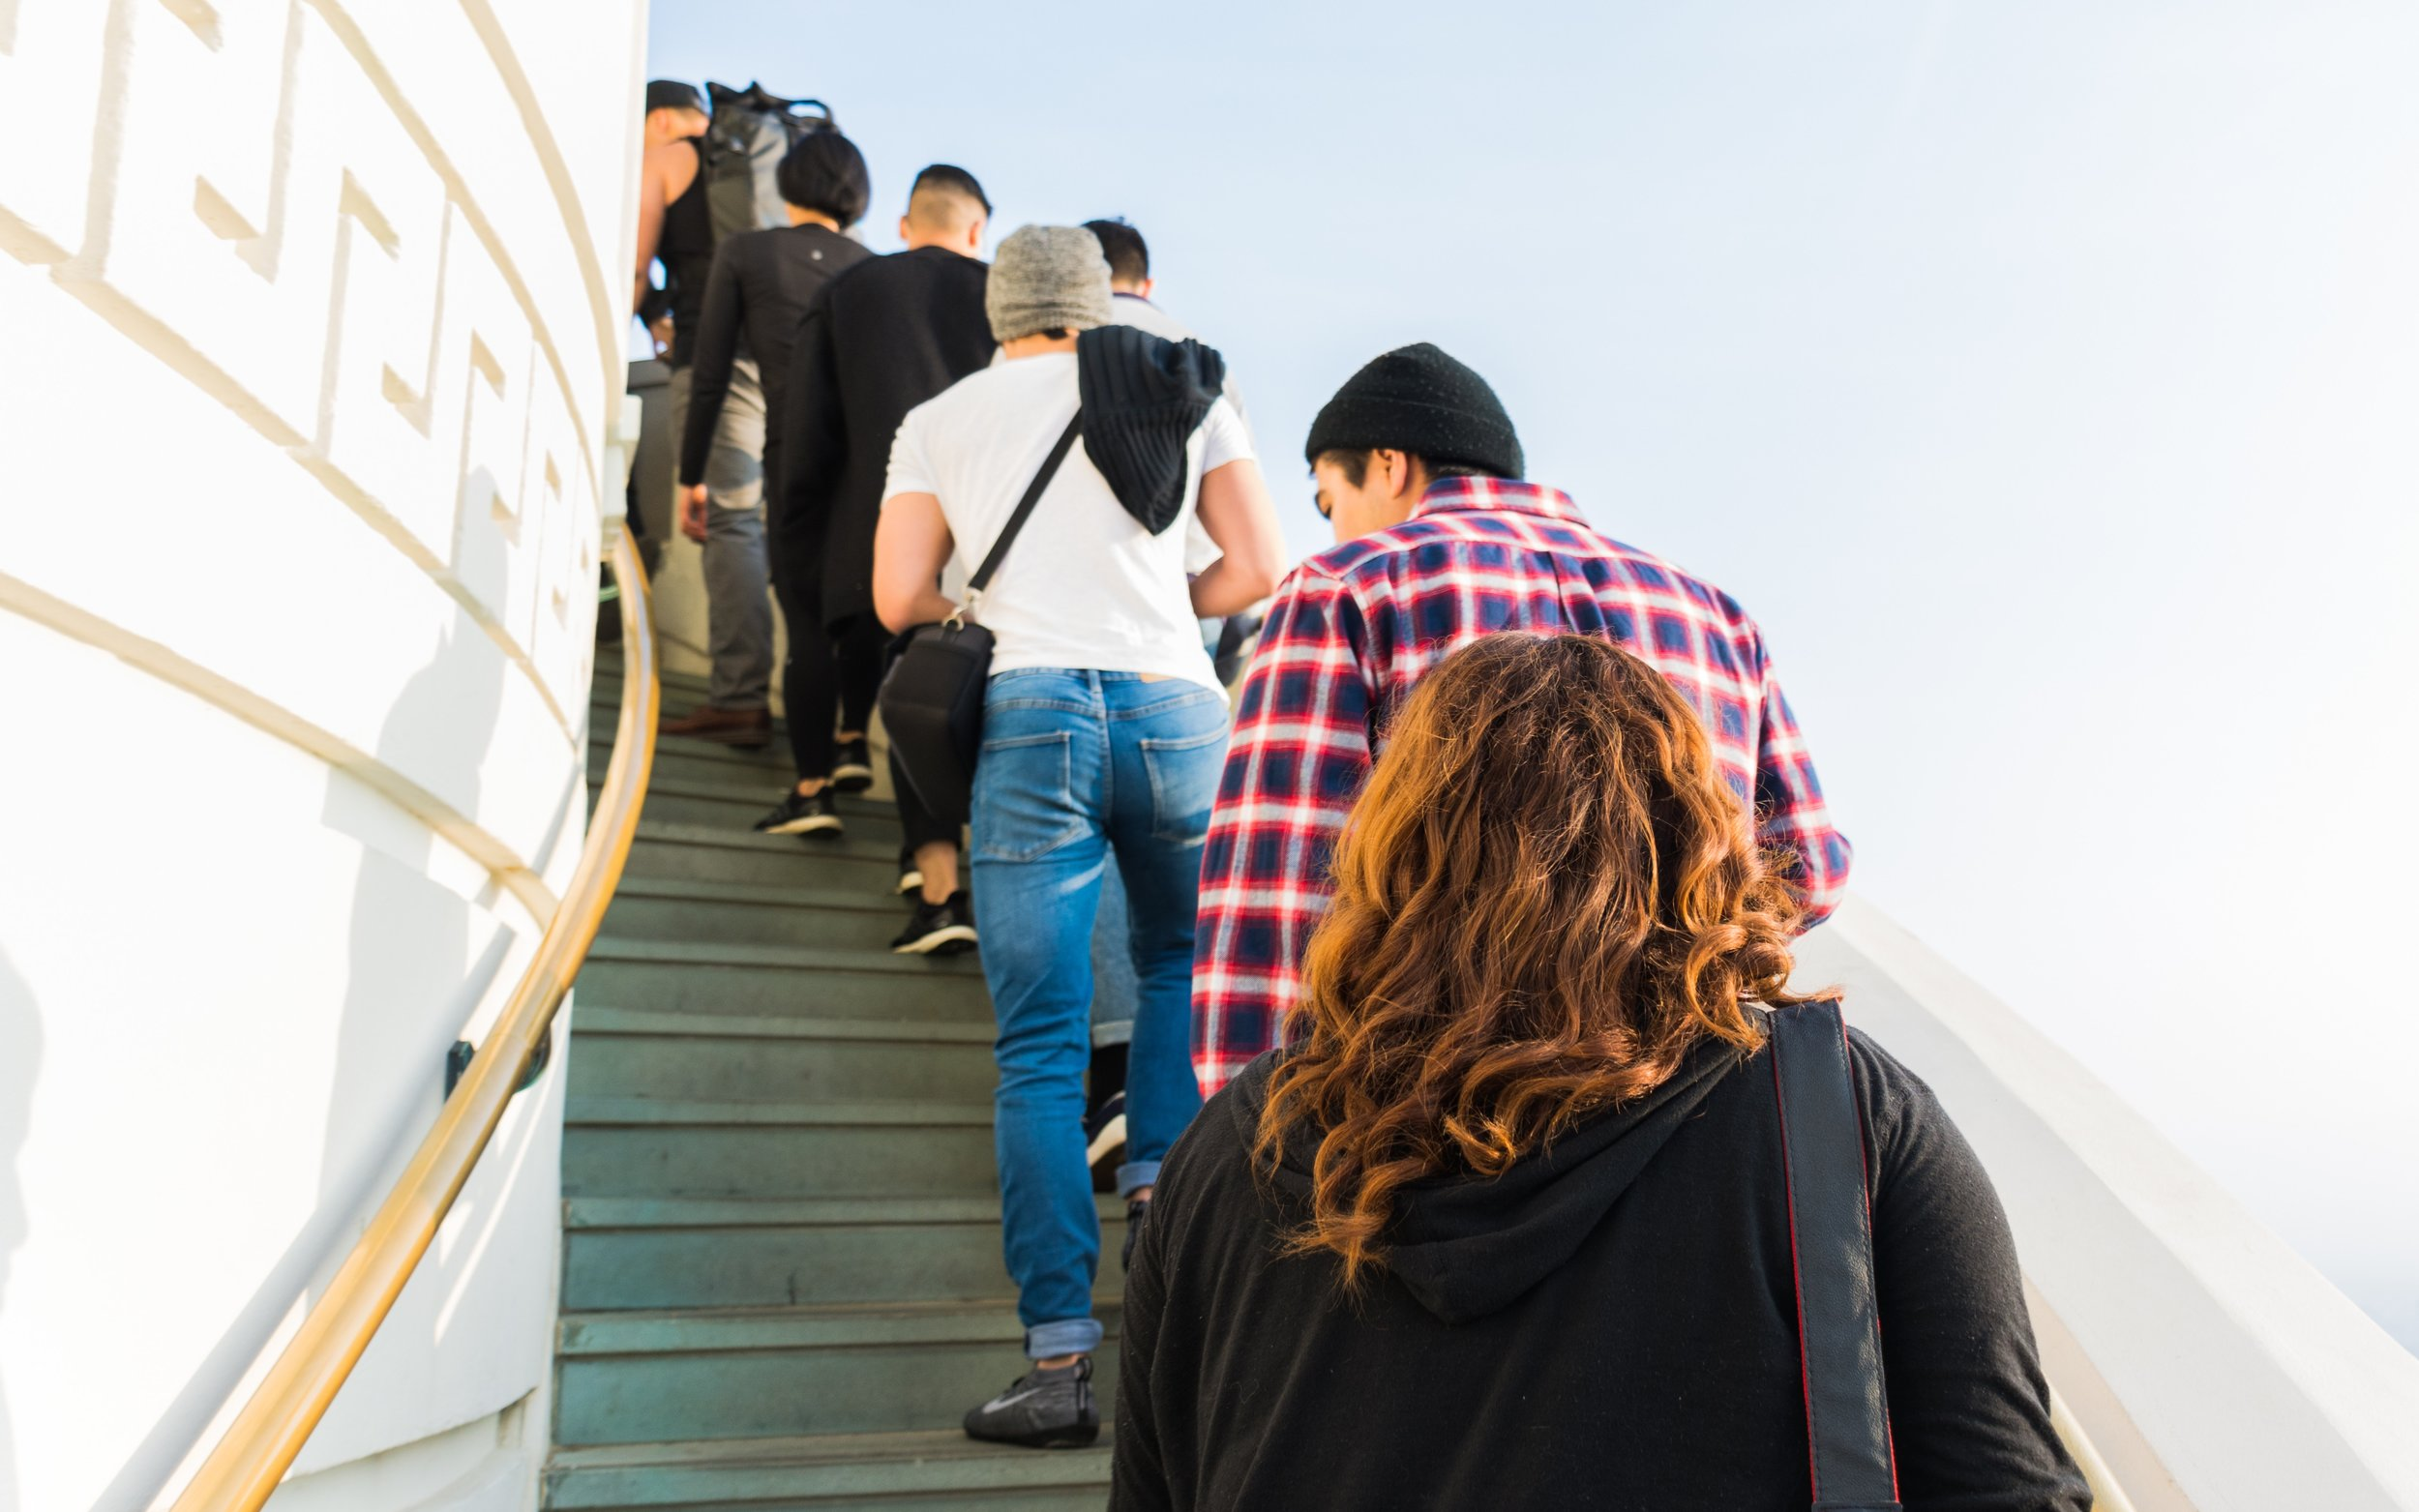 a lineup of men and women up a flight of stairs